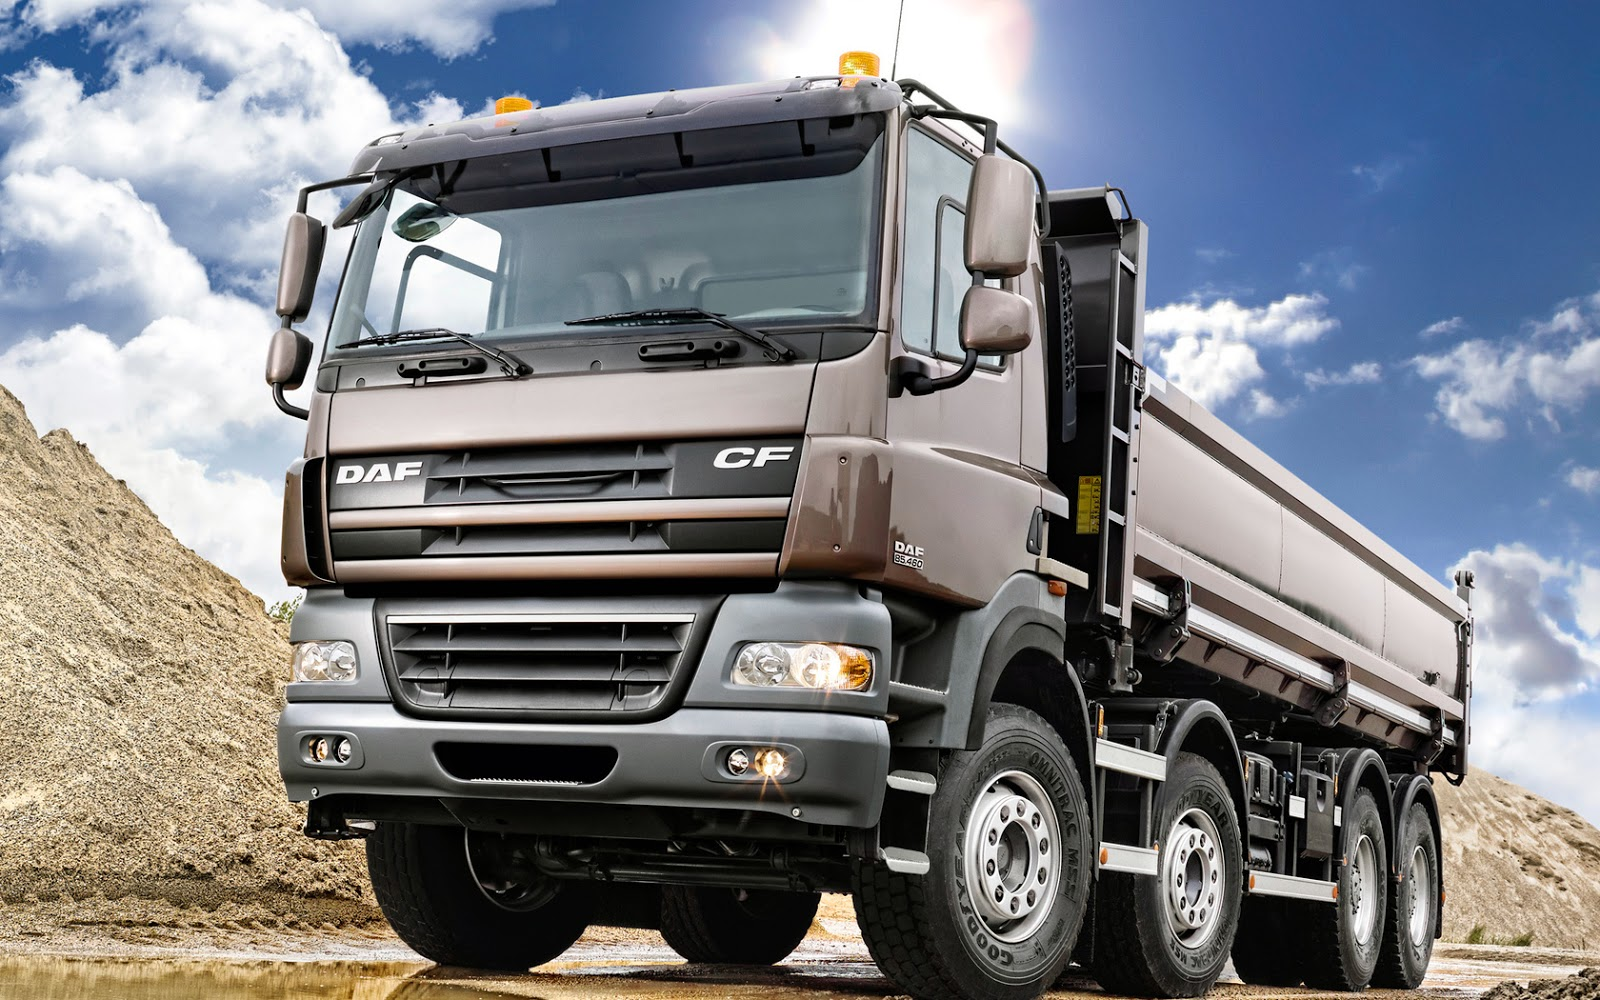 HD Car Wallpapers: Dump Truck Wallpapers